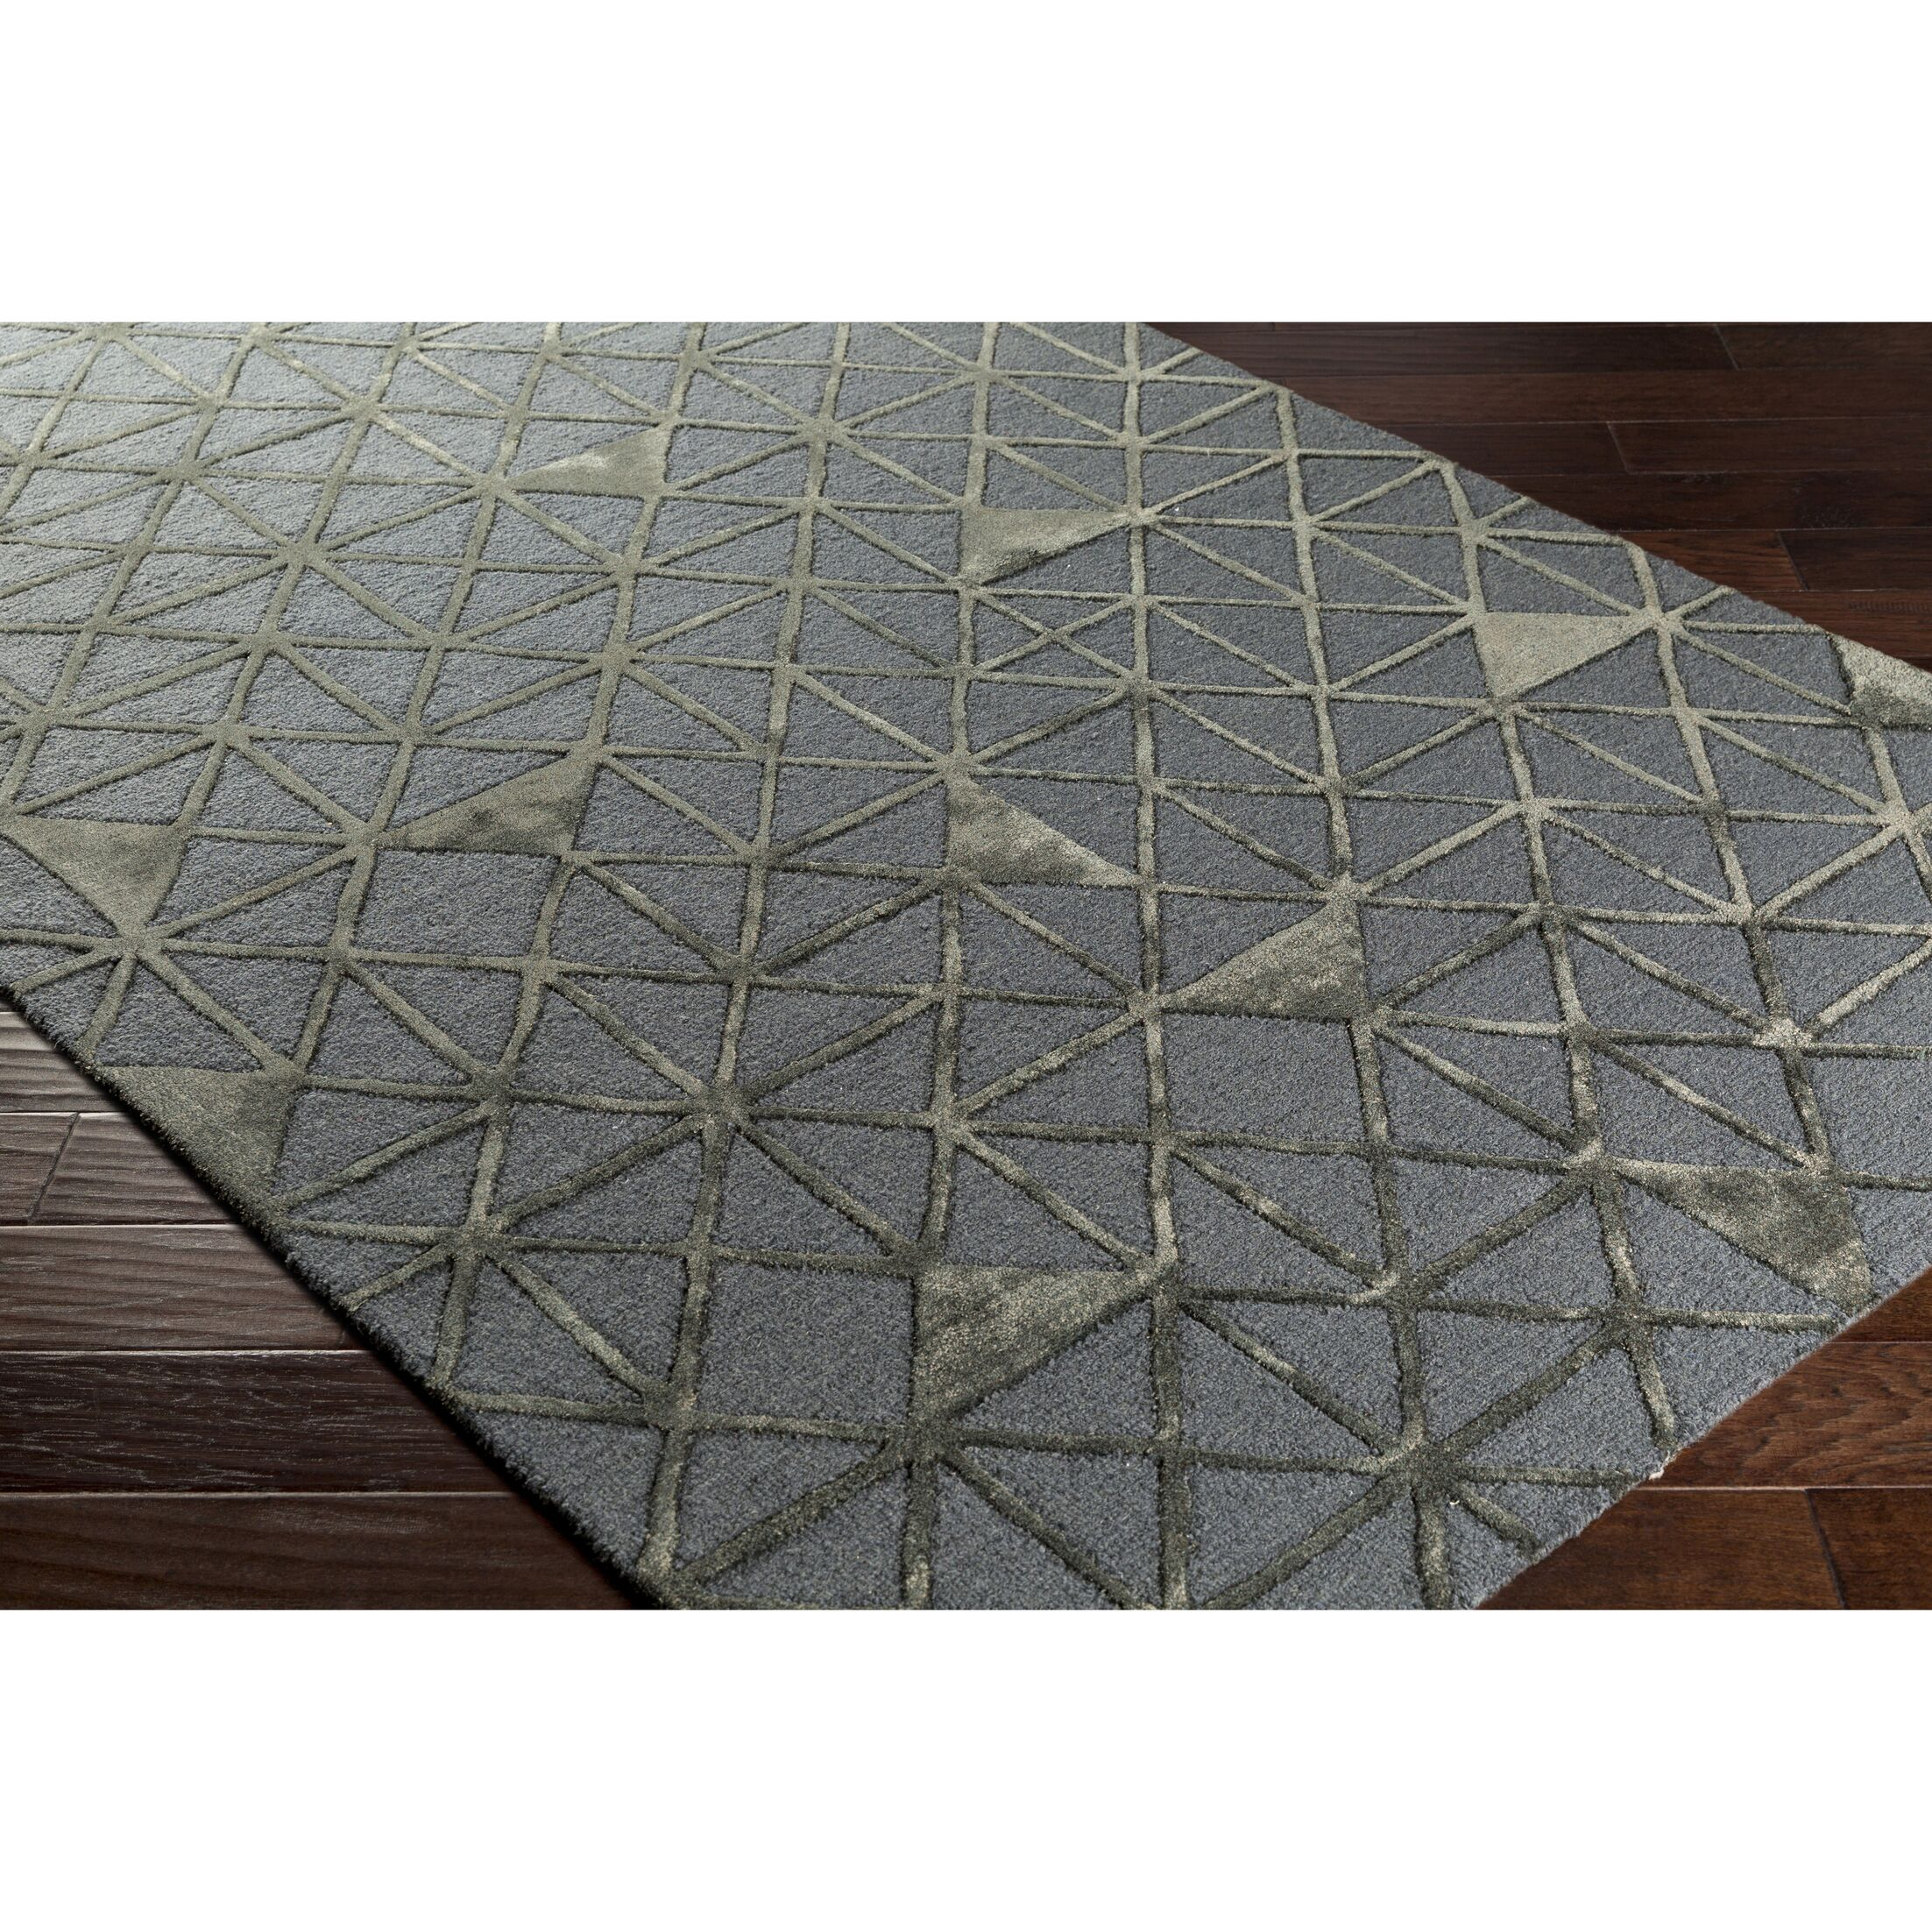 Blandon Hand-Tufted Gray/Brown Area Rug Rug Size: Rectangle 5' x 7'6